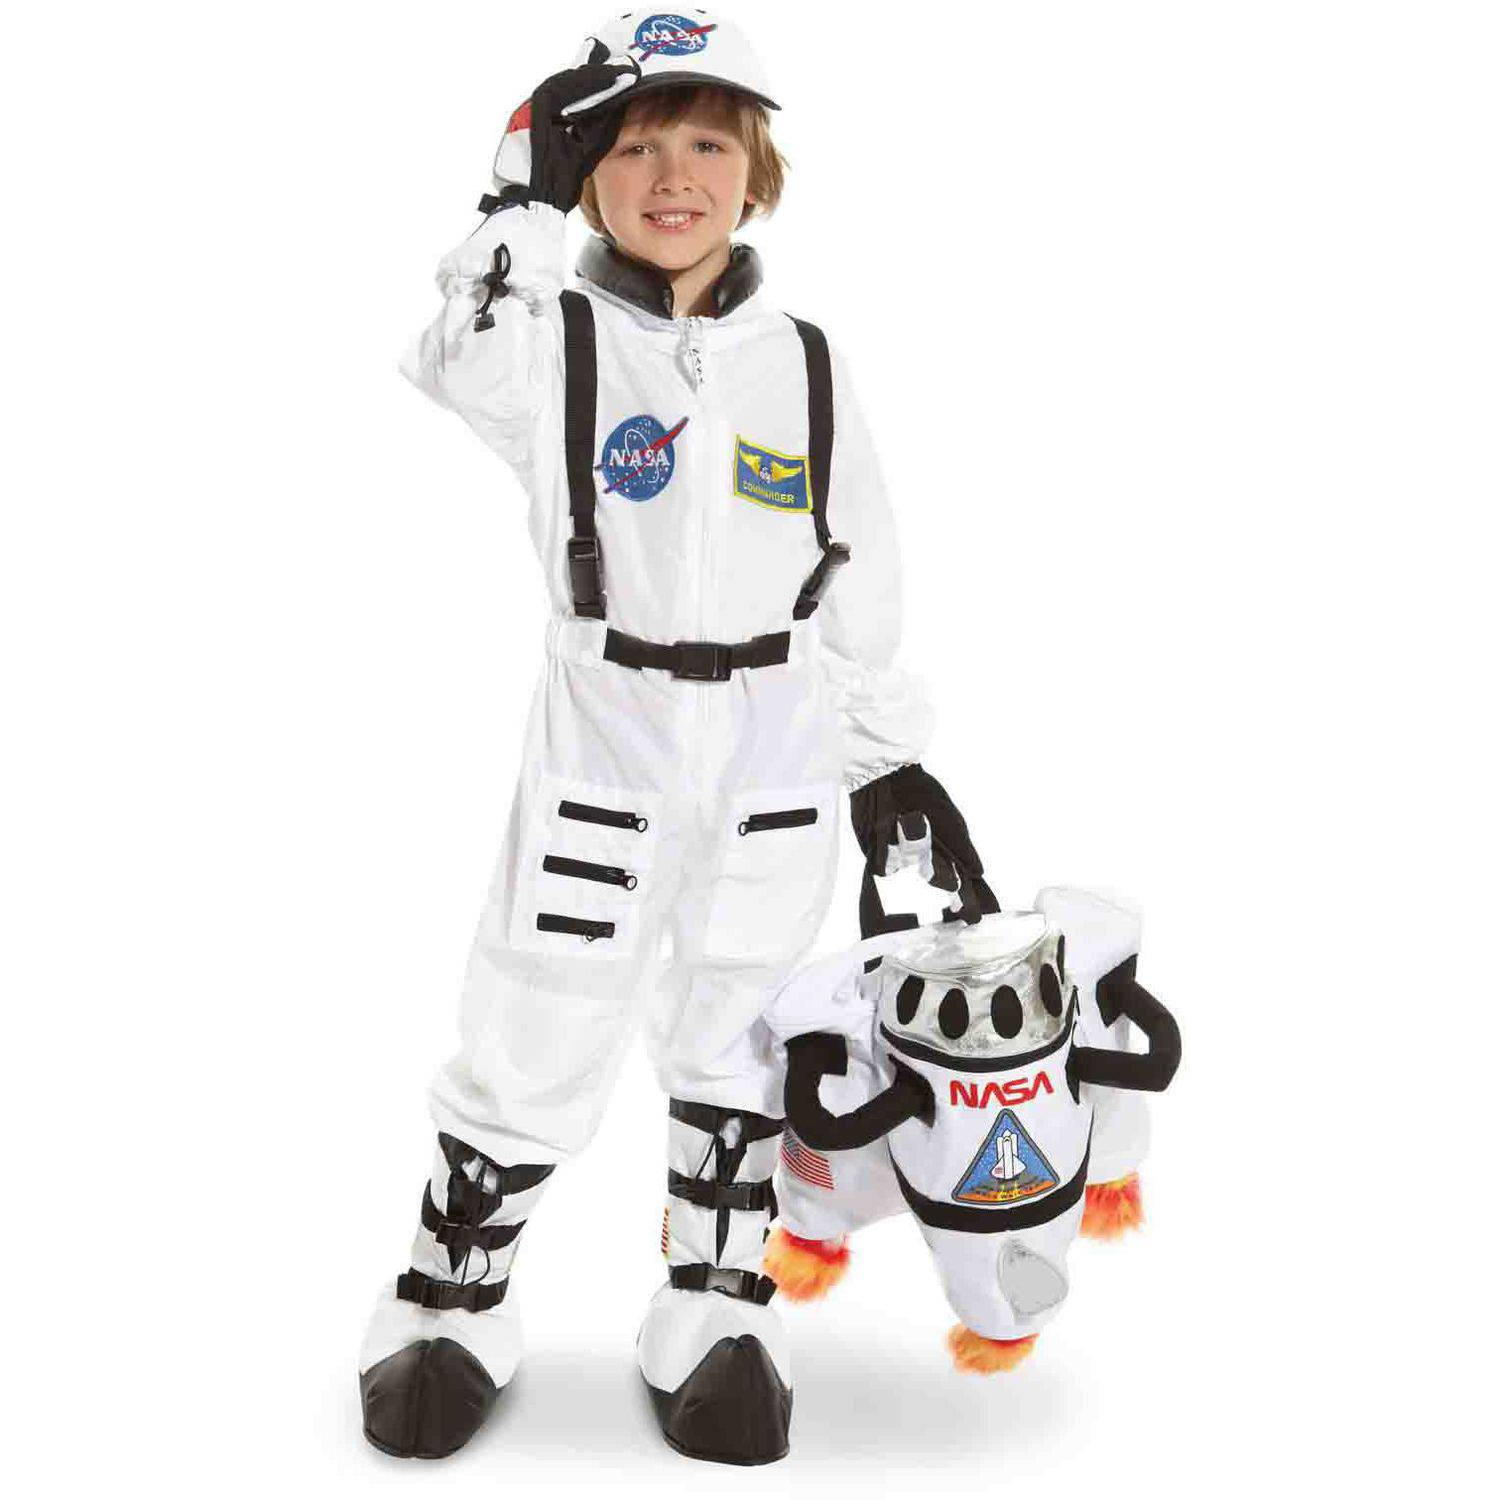 NASA Jr. Astronaut Suit White Toddler Halloween Costume